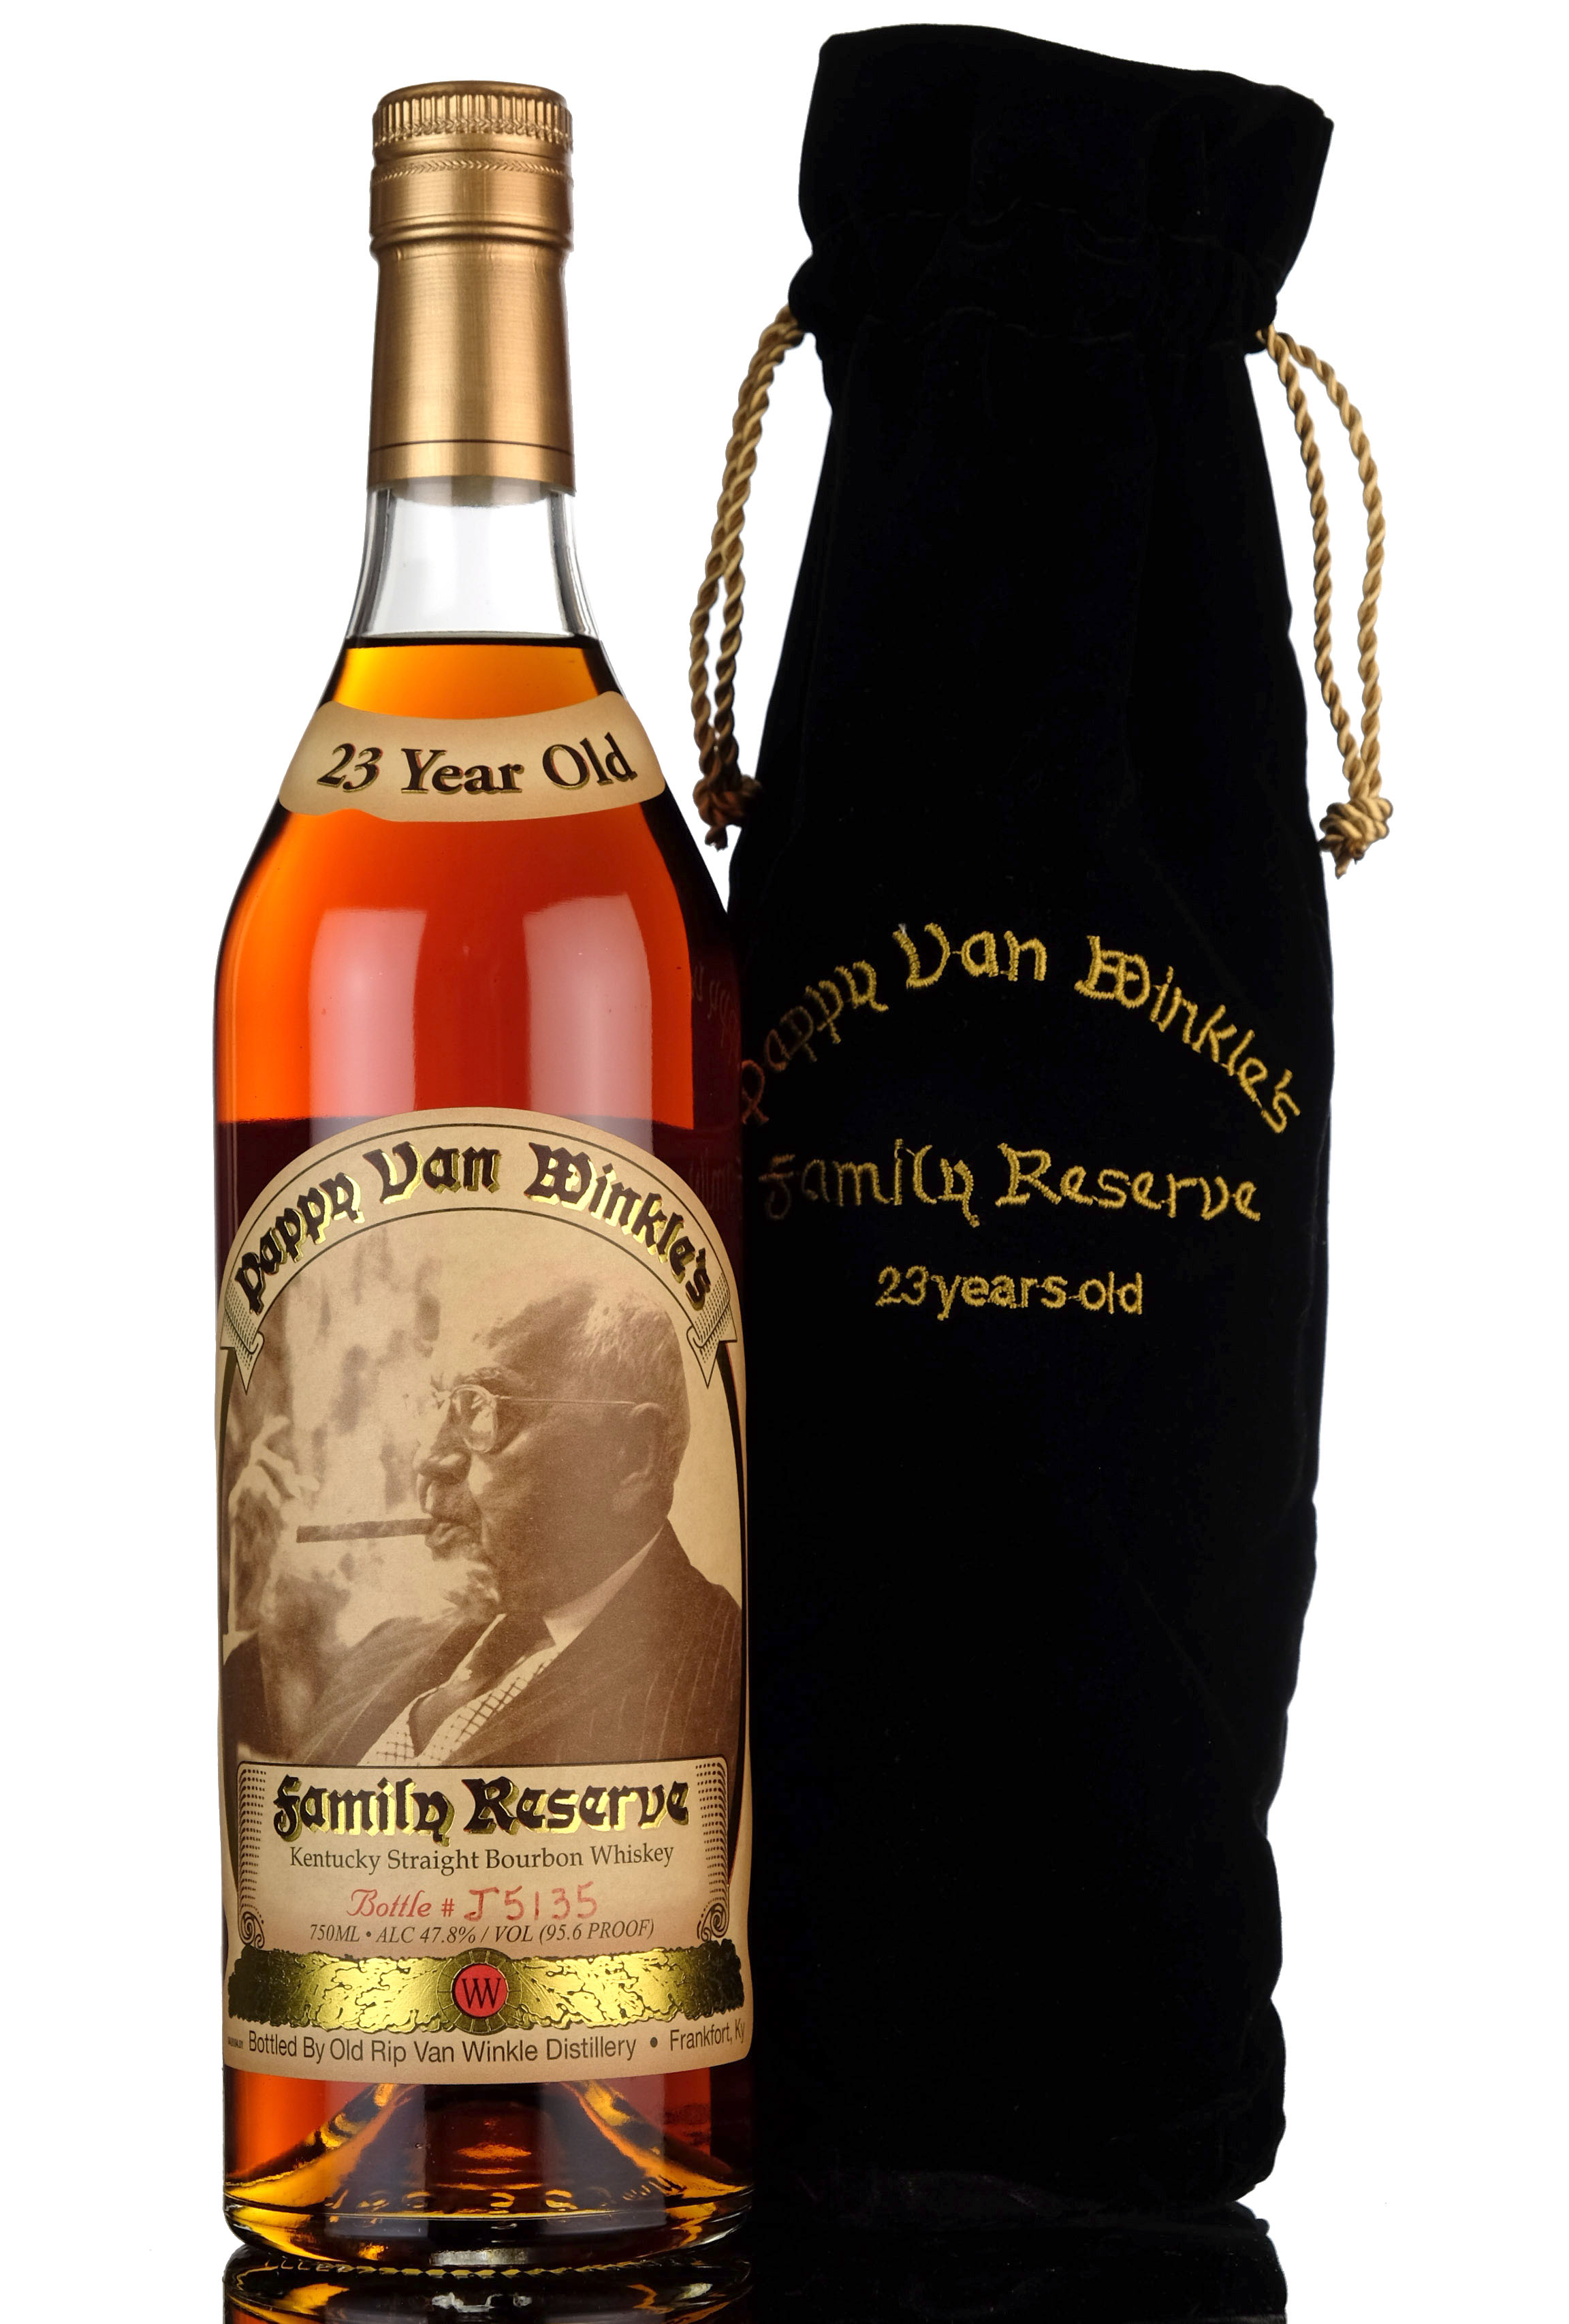 pappy van winkles family reserve - 23 year old - kentucky straight bourbon whiskey - 2018